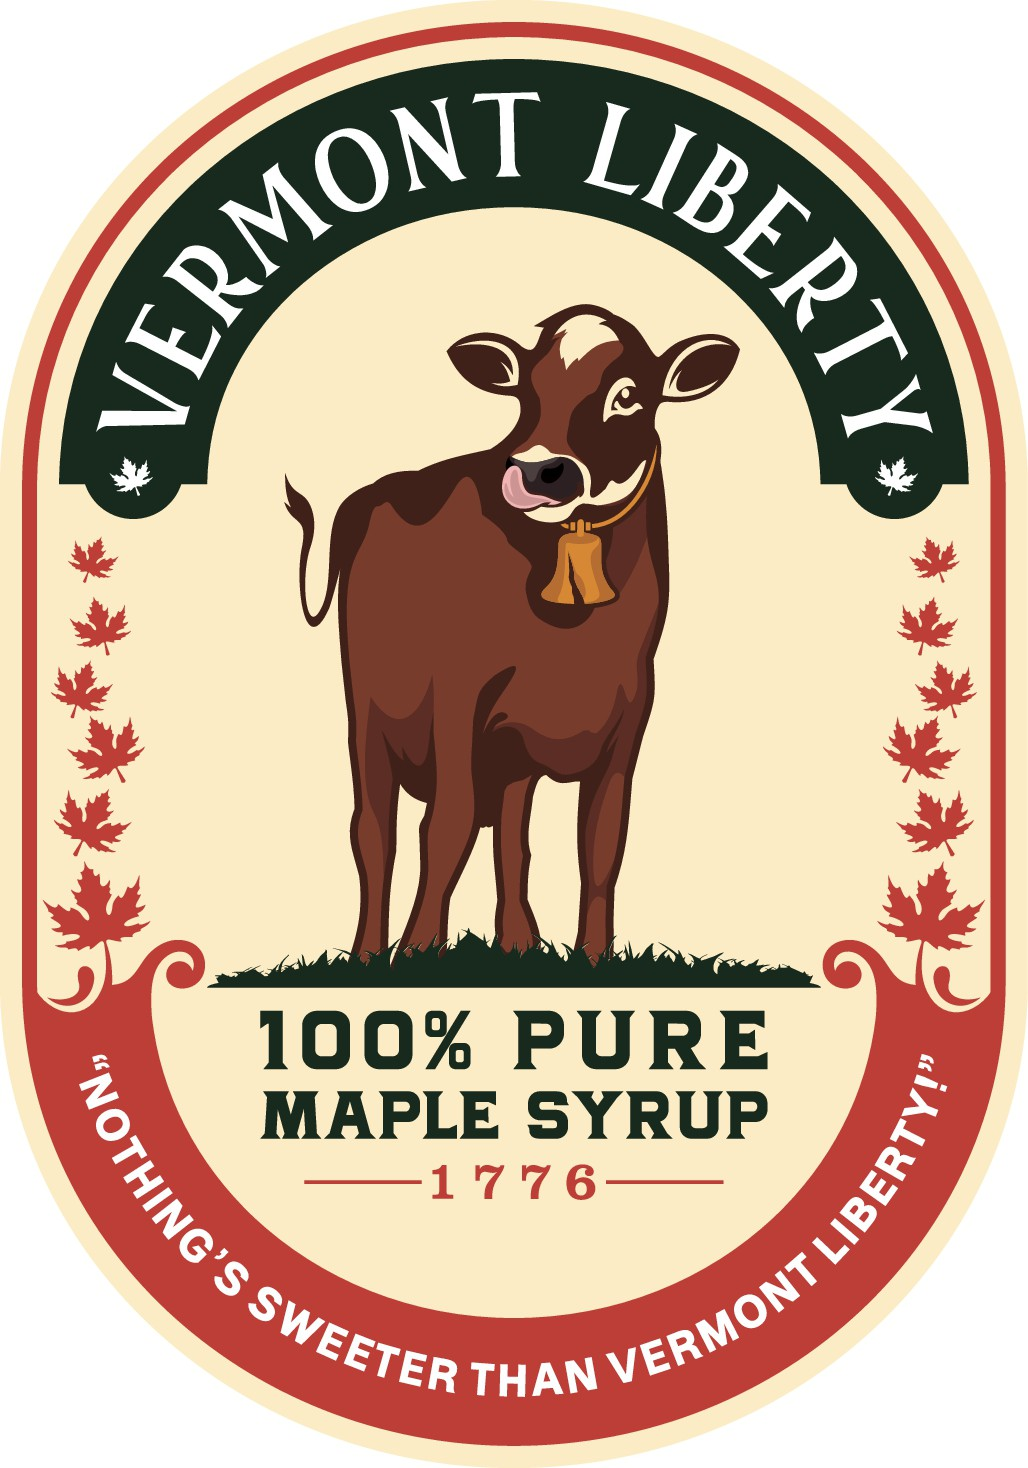 Attractive Label for Vermont Maple Syrup With Cow Wearing Liberty Bell